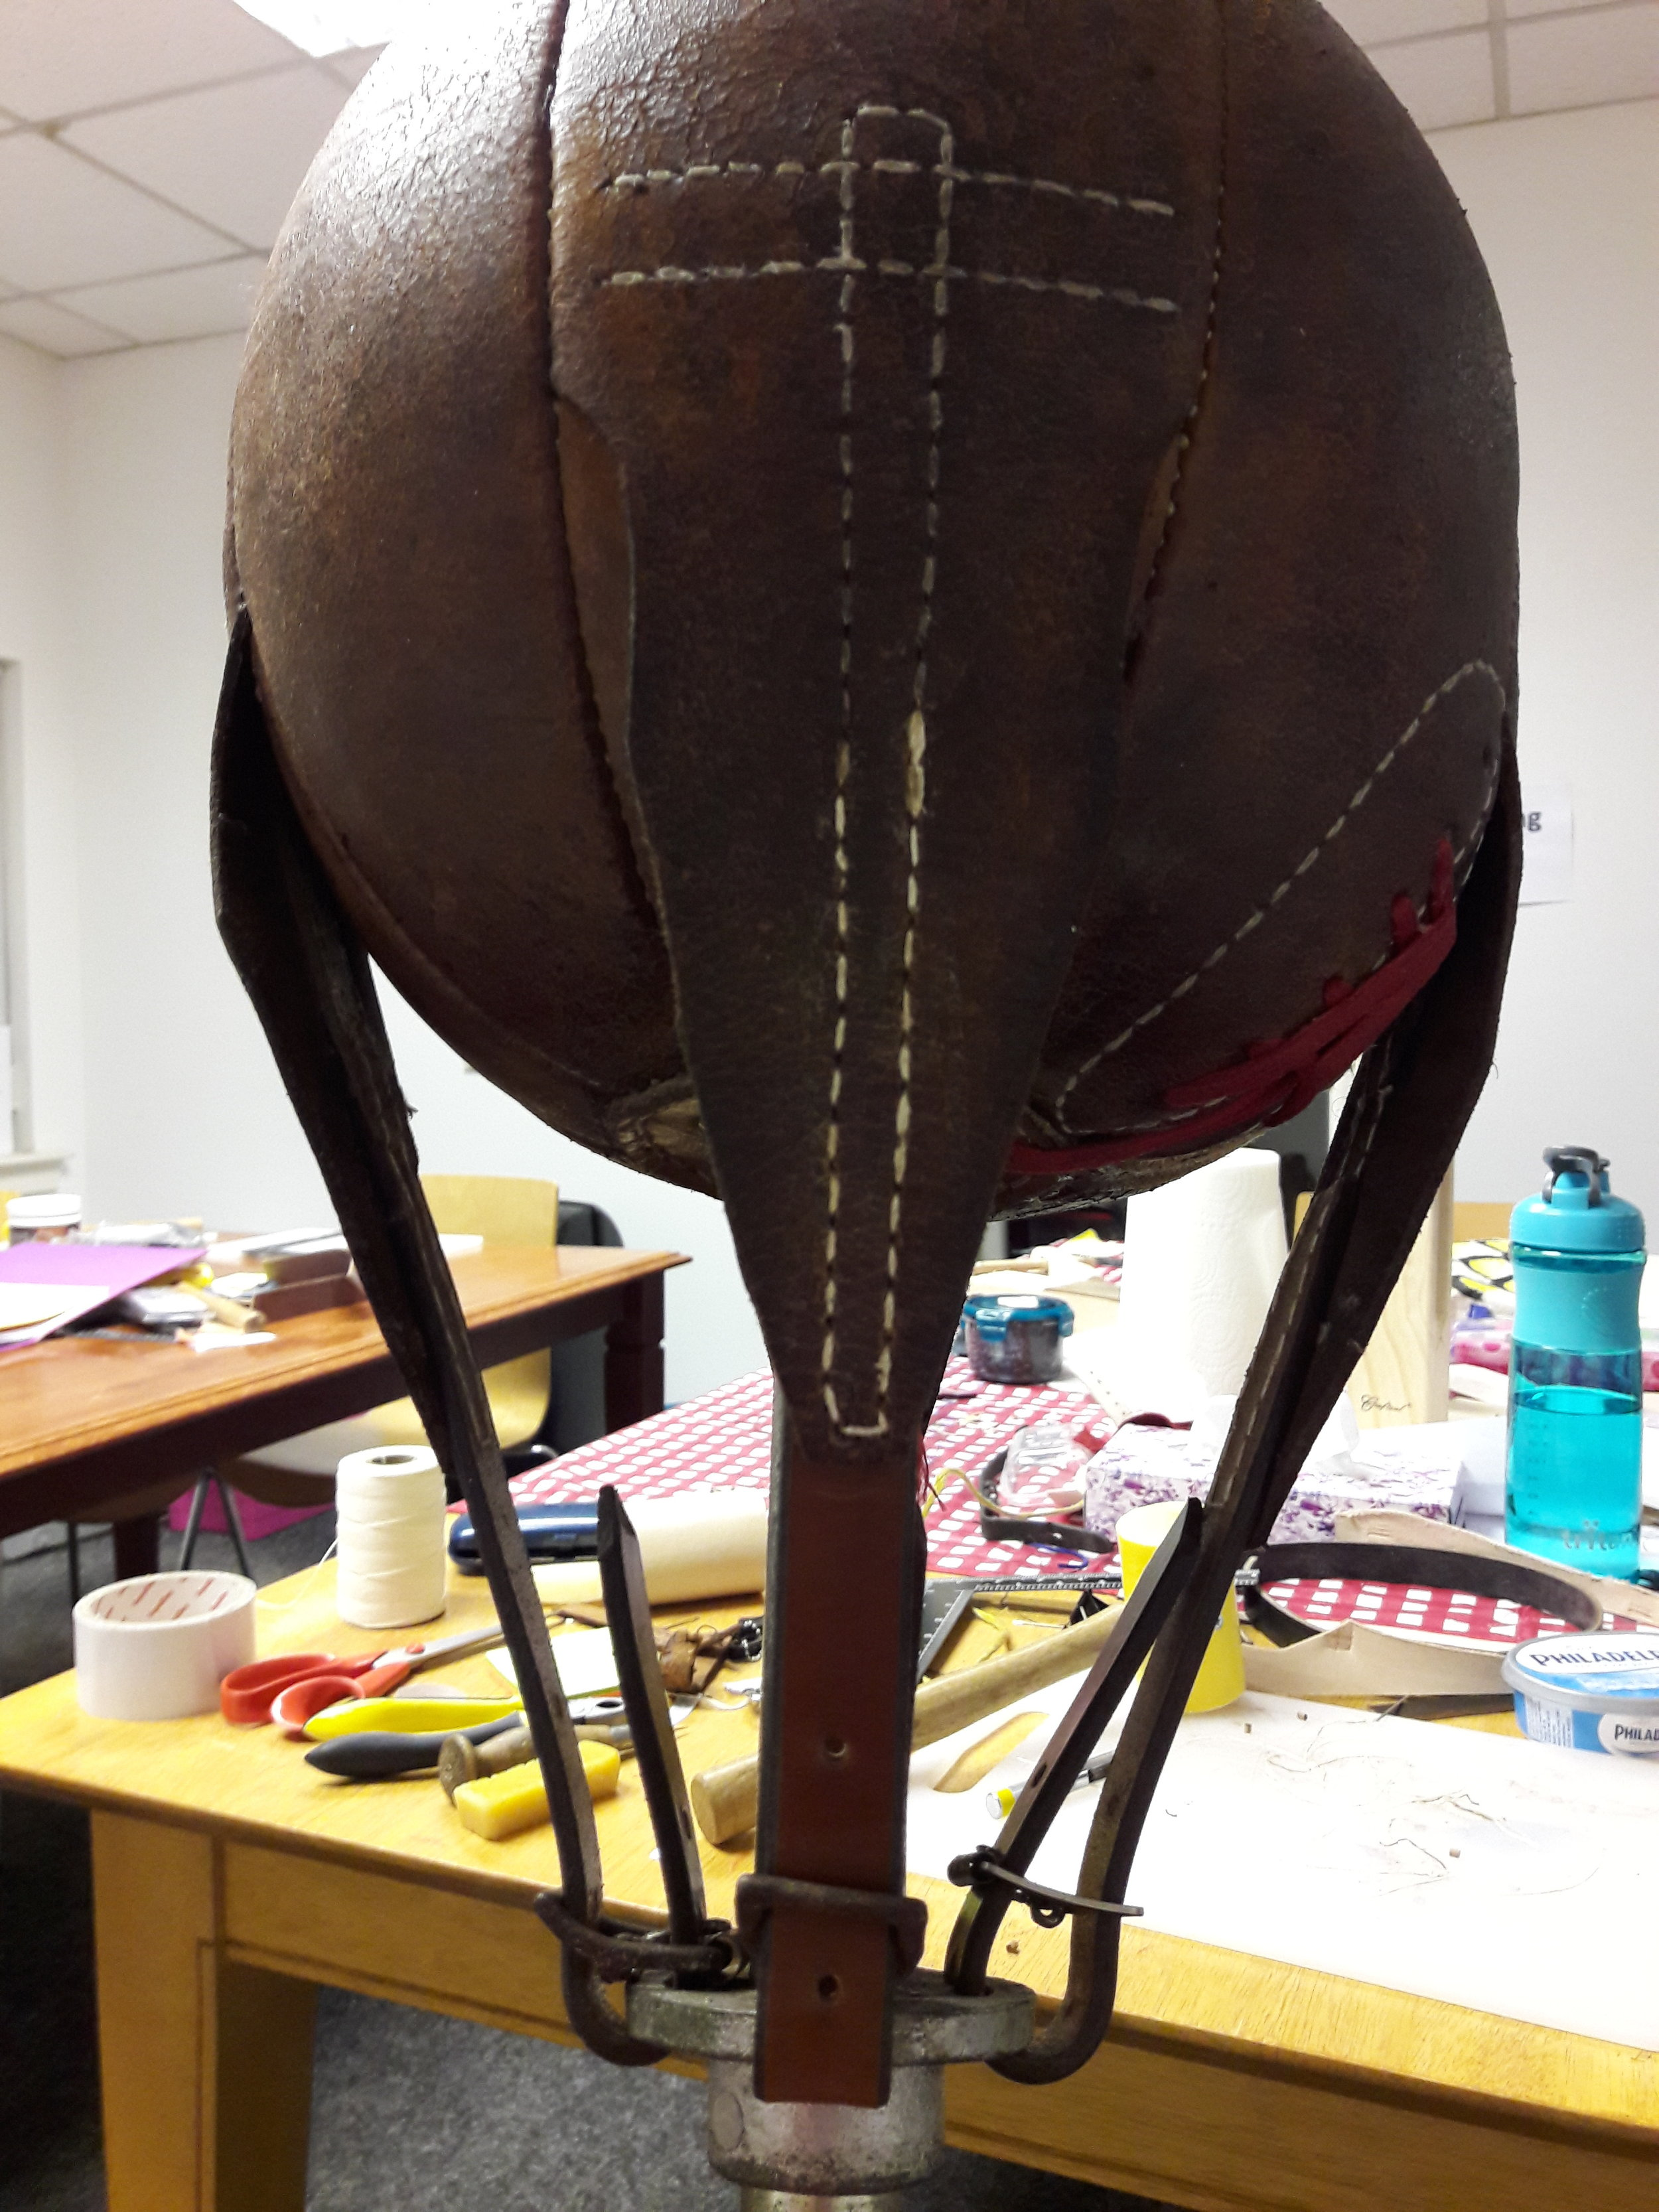 Family heirloom - leather punchball - Straps were worn out so replaced with new.